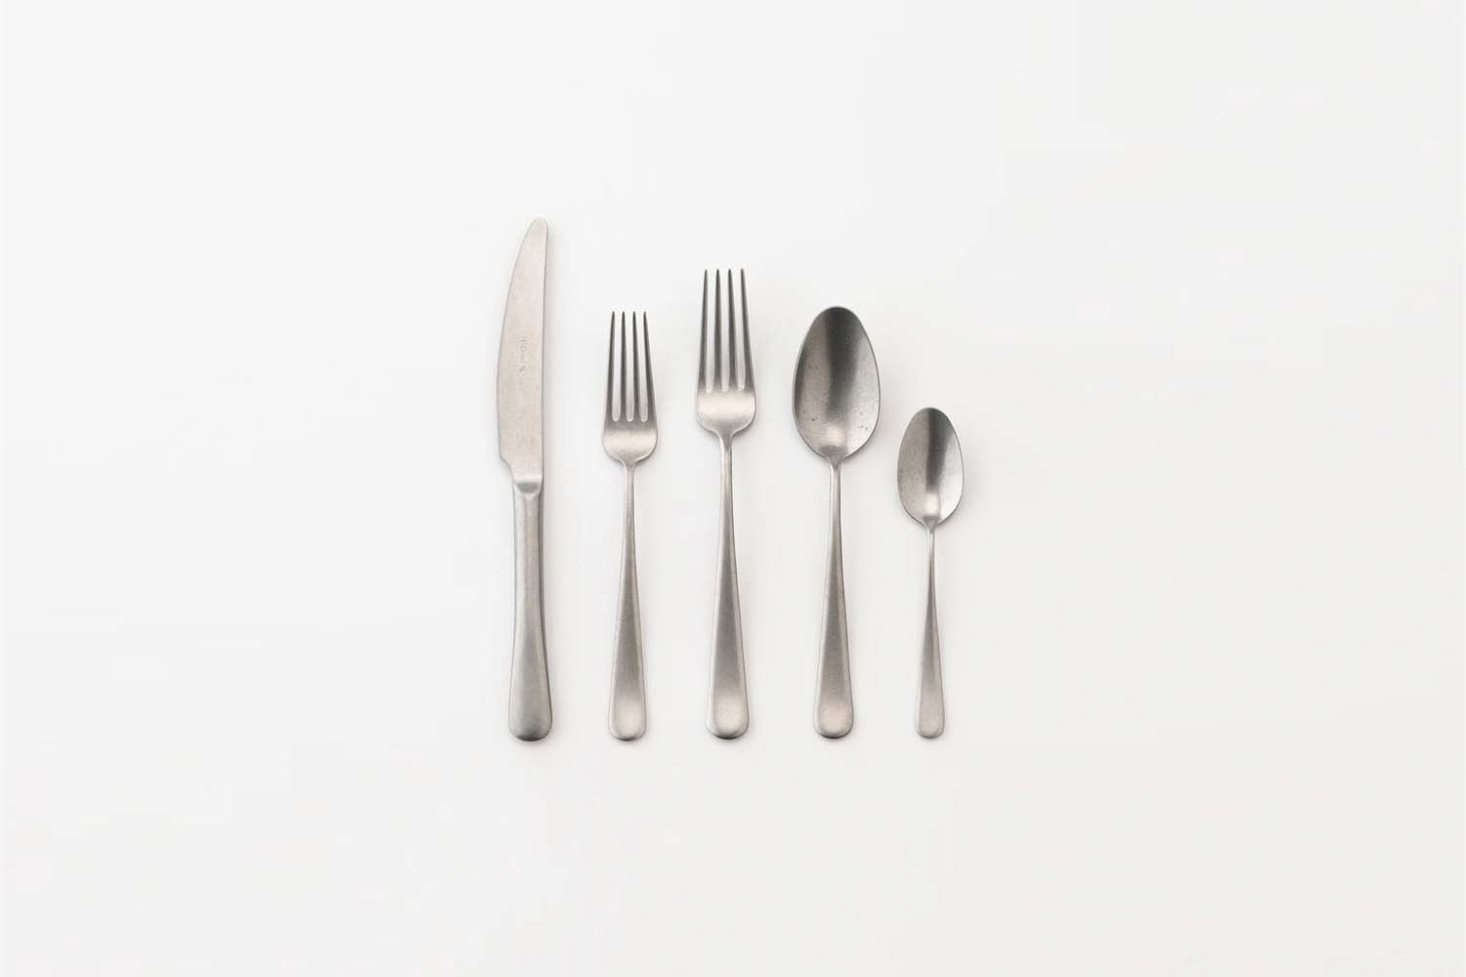 The simple set of stainless steel Everyday Flatware is $58 at Schoolhouse.